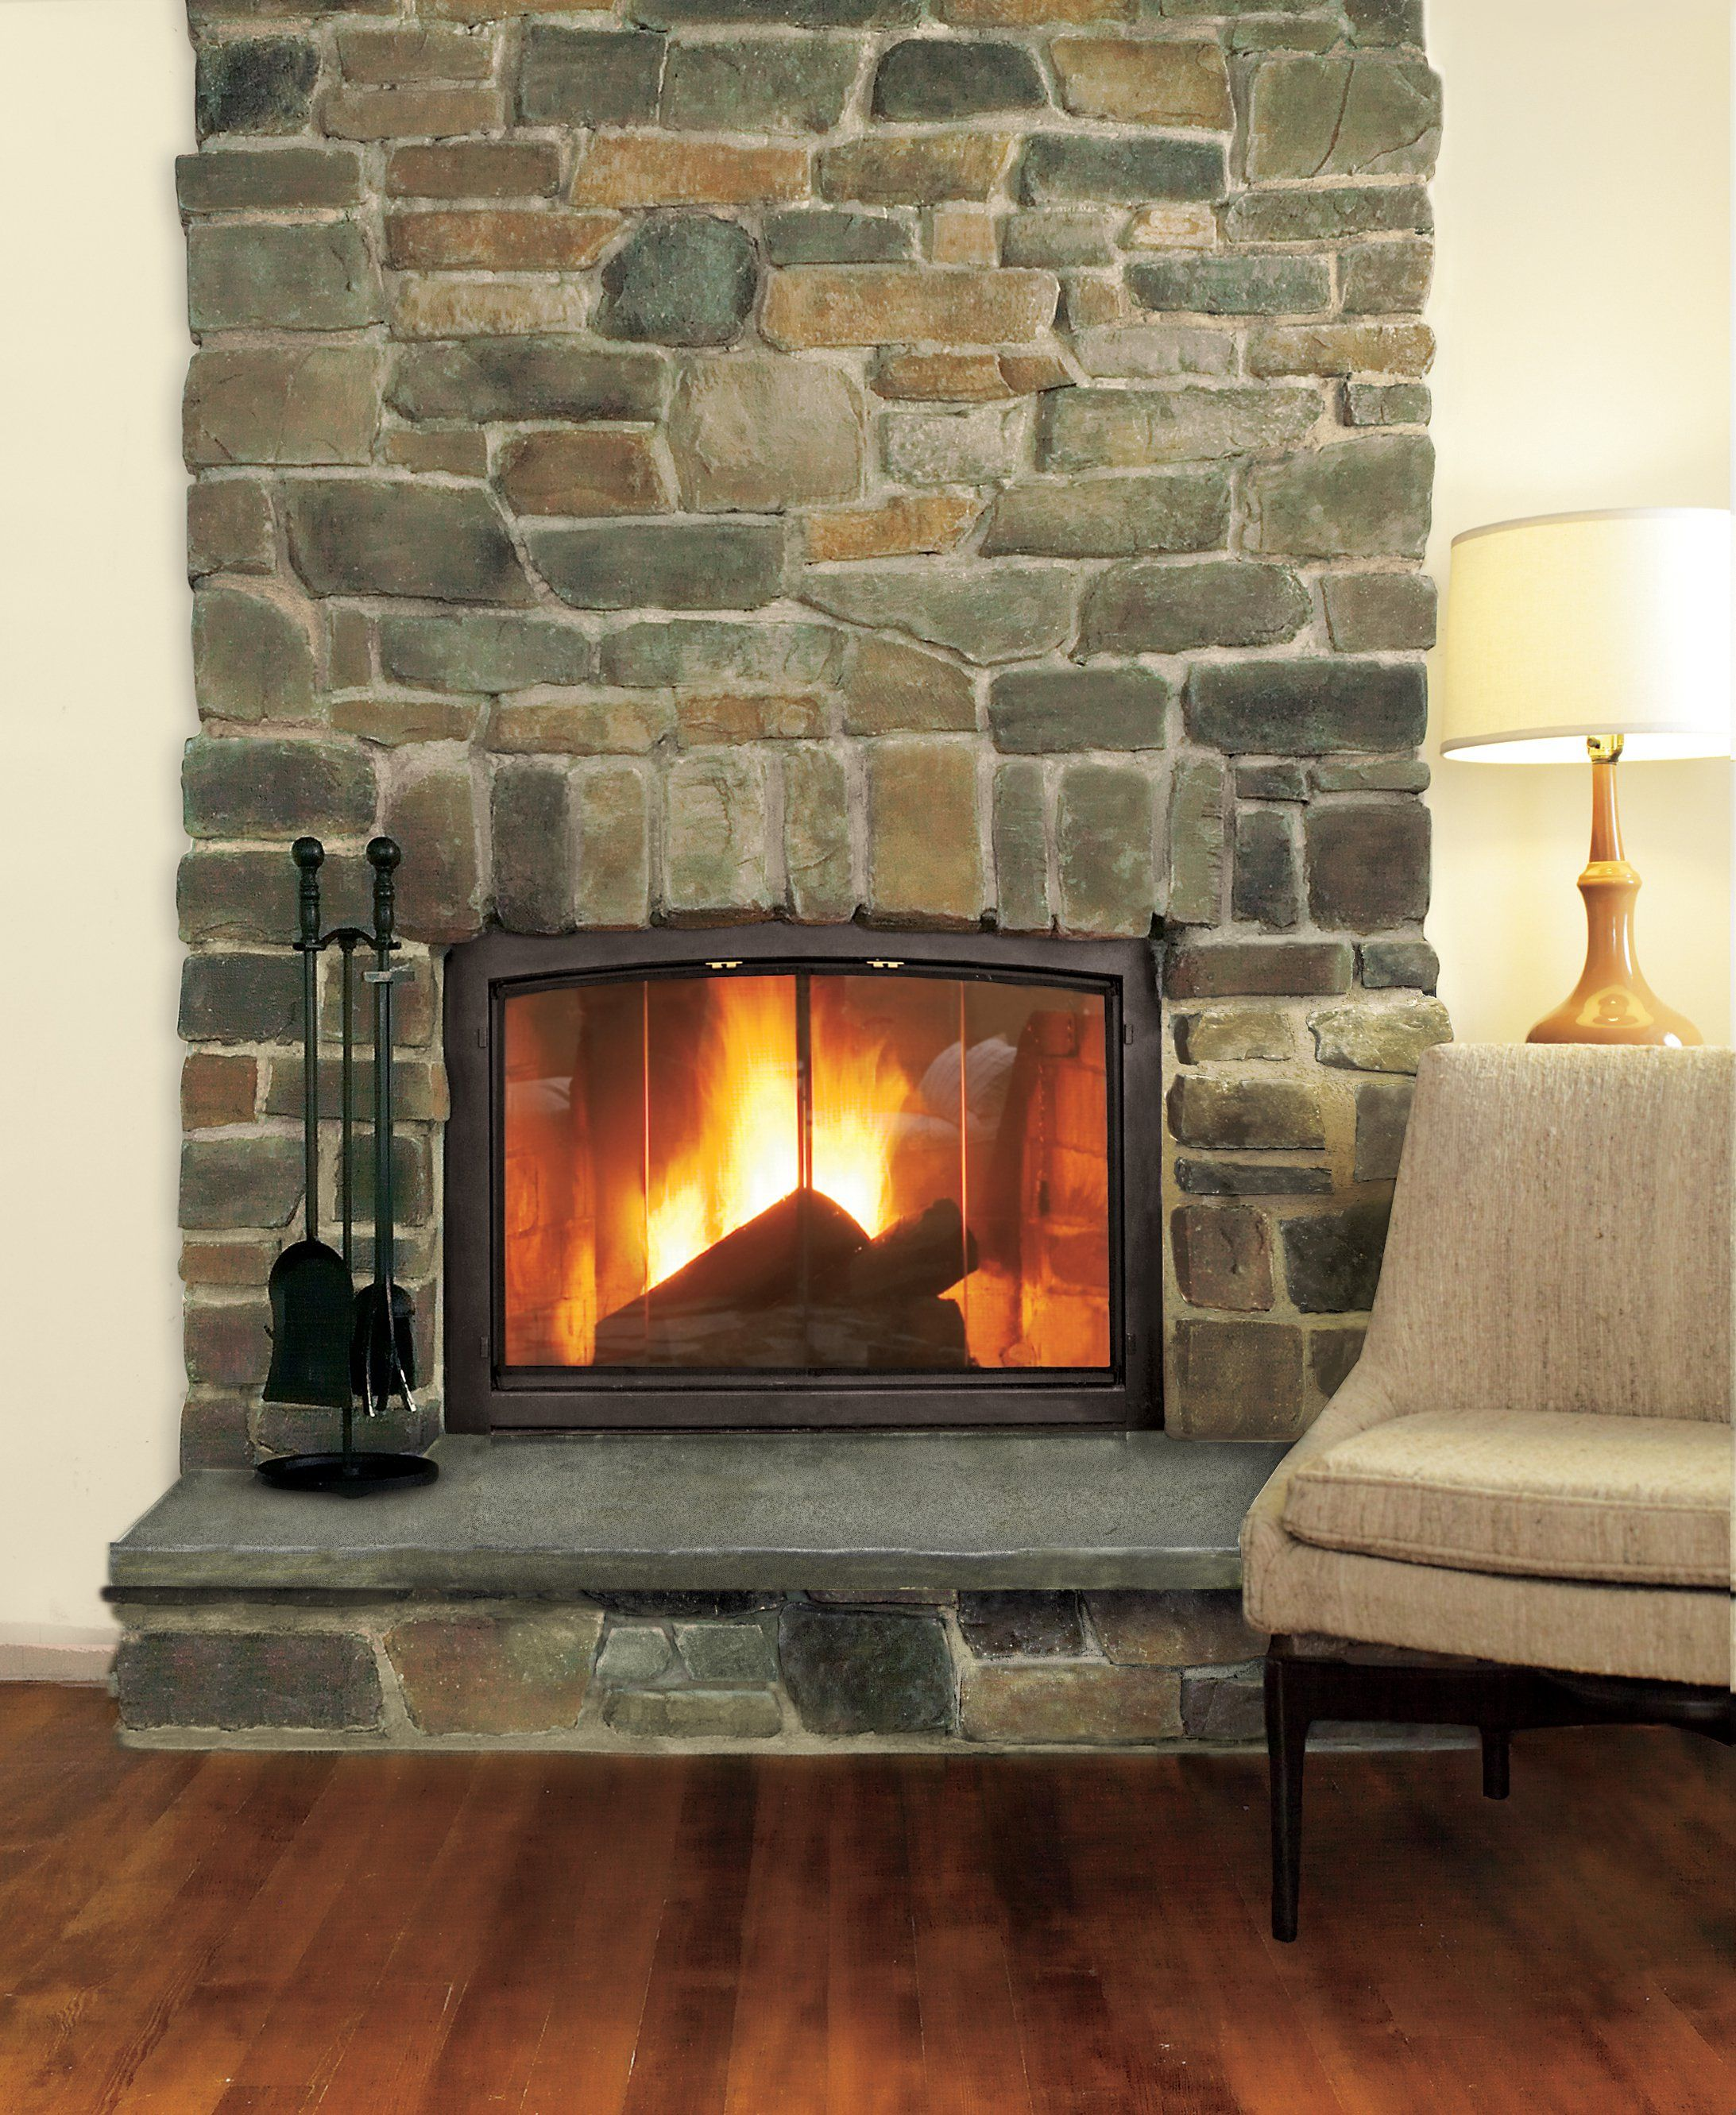 How To Build A Stone Veneer Fireplace Surround Stone Veneer Fireplace Stone Fireplace Surround Fireplace Surrounds